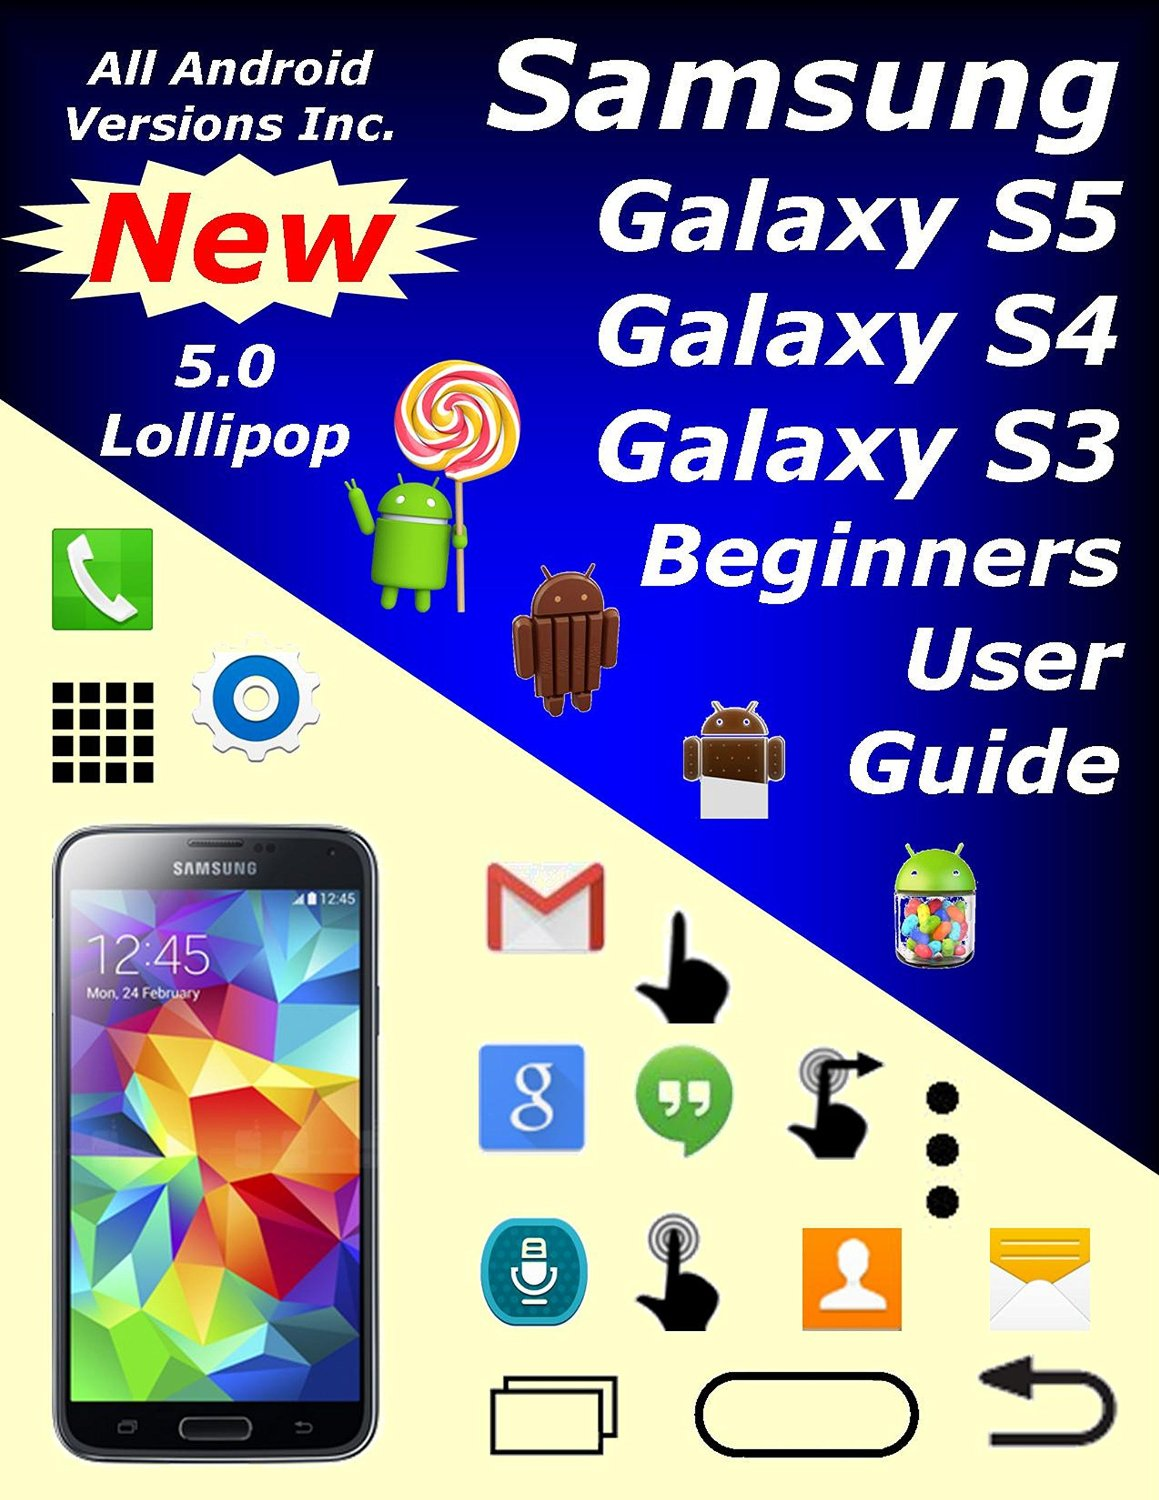 Samsung Galaxy S5, S4, & S3 Beginners User Guide free download